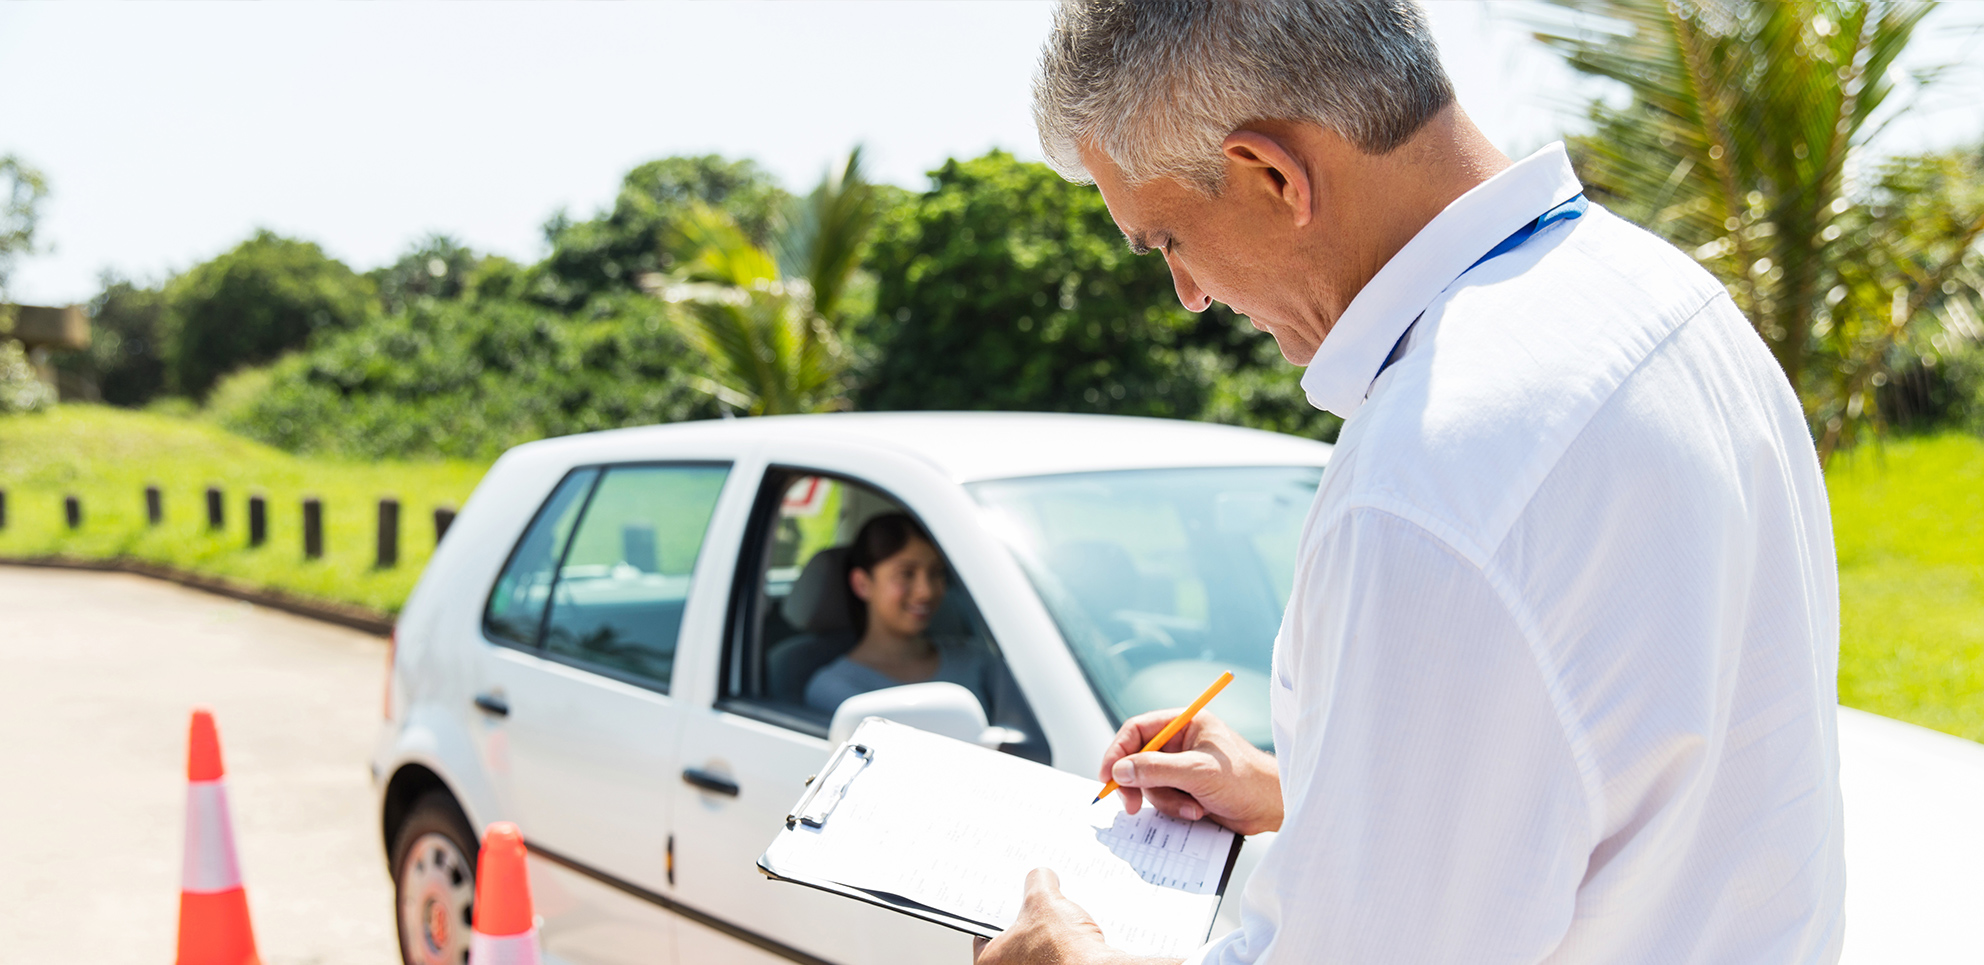 Learn to Drive in Comfort and Safety With Intensive Driving Course Leeds